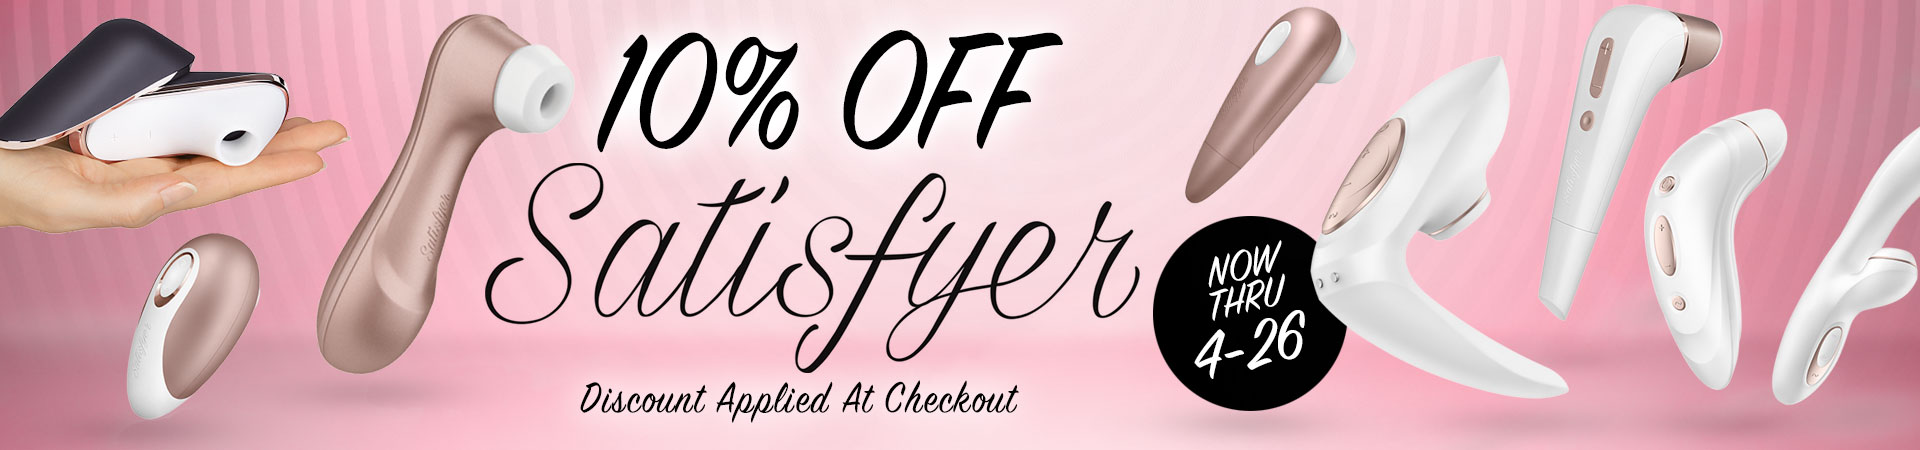 10% Off Satisfyer - Now Thru 4/26 - Discount Applied At Checkout